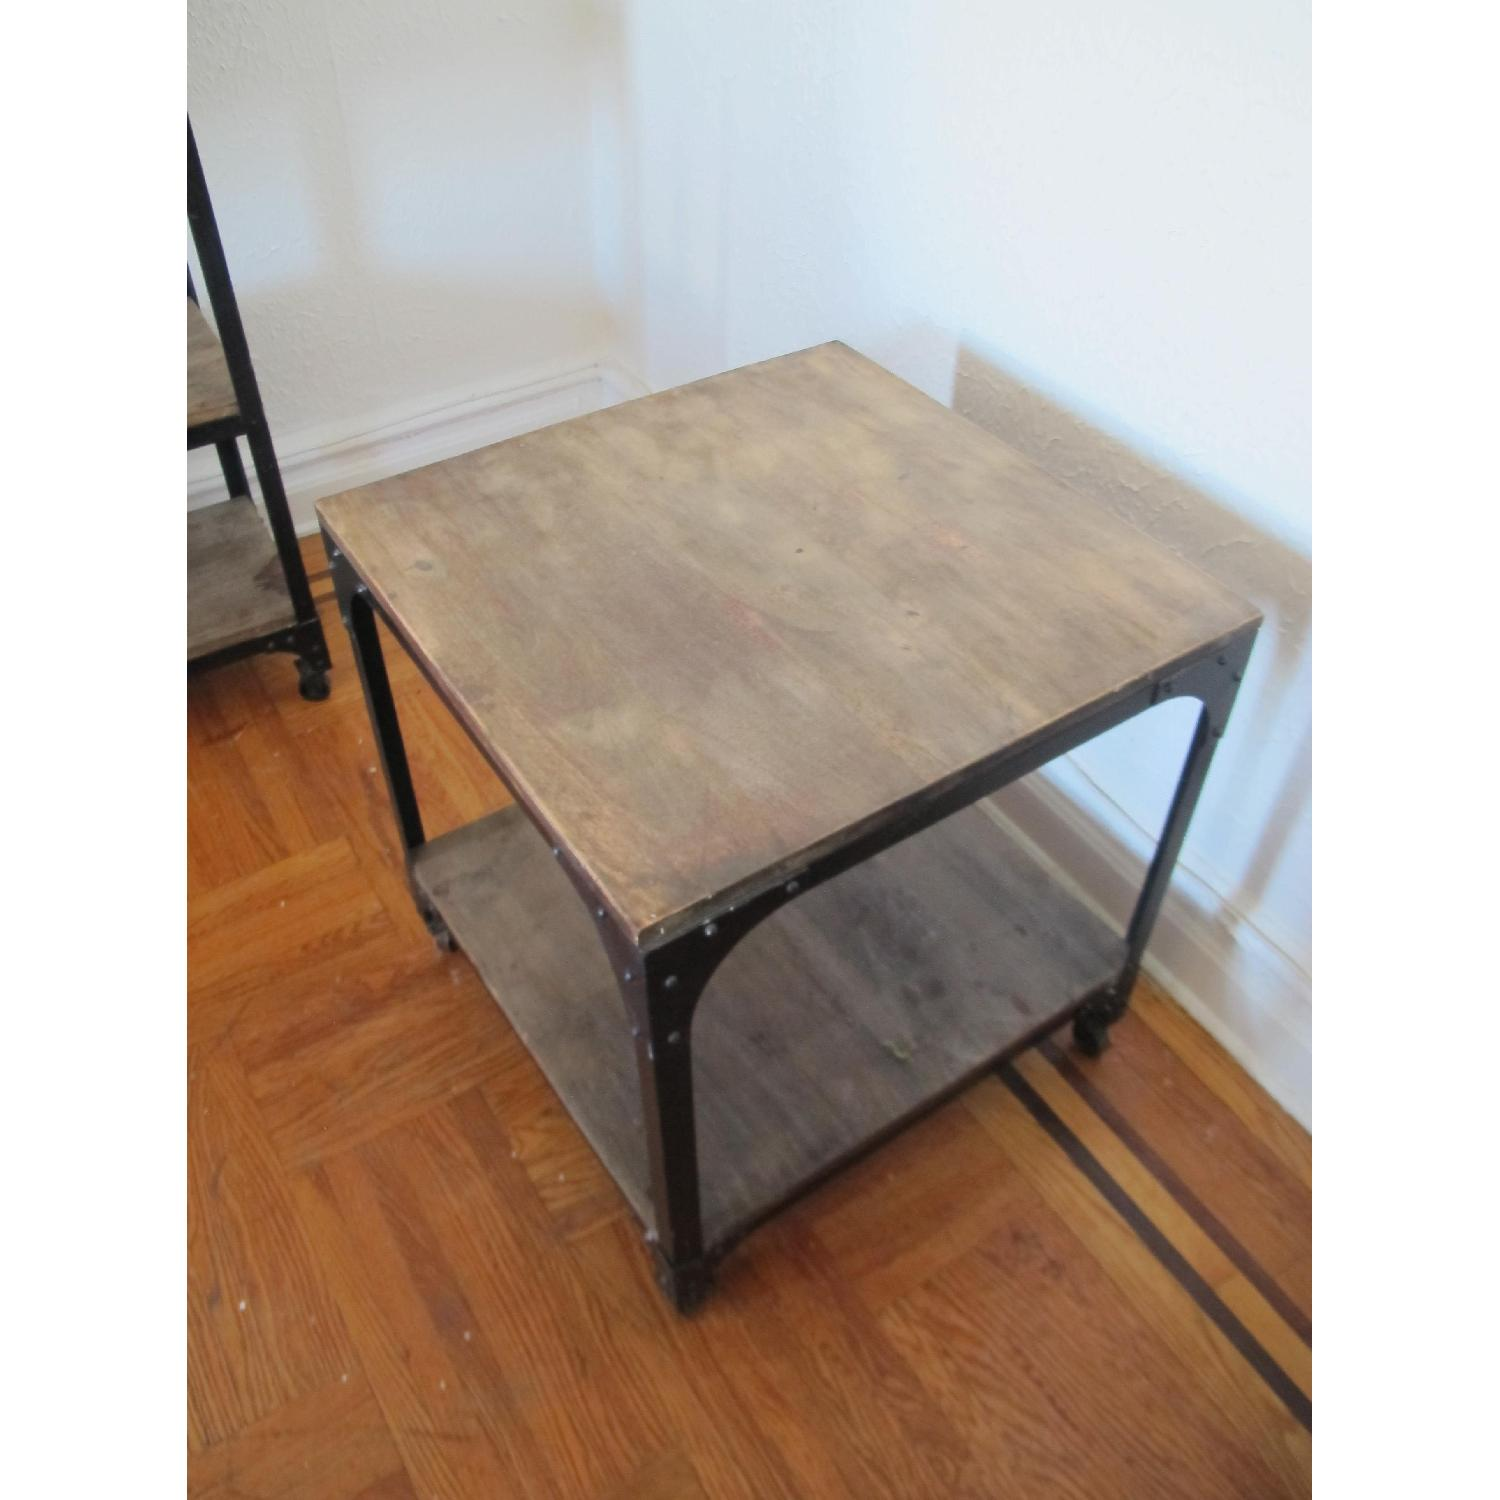 Anthropologie Decker Cube Side Tables/Consoles - image-2